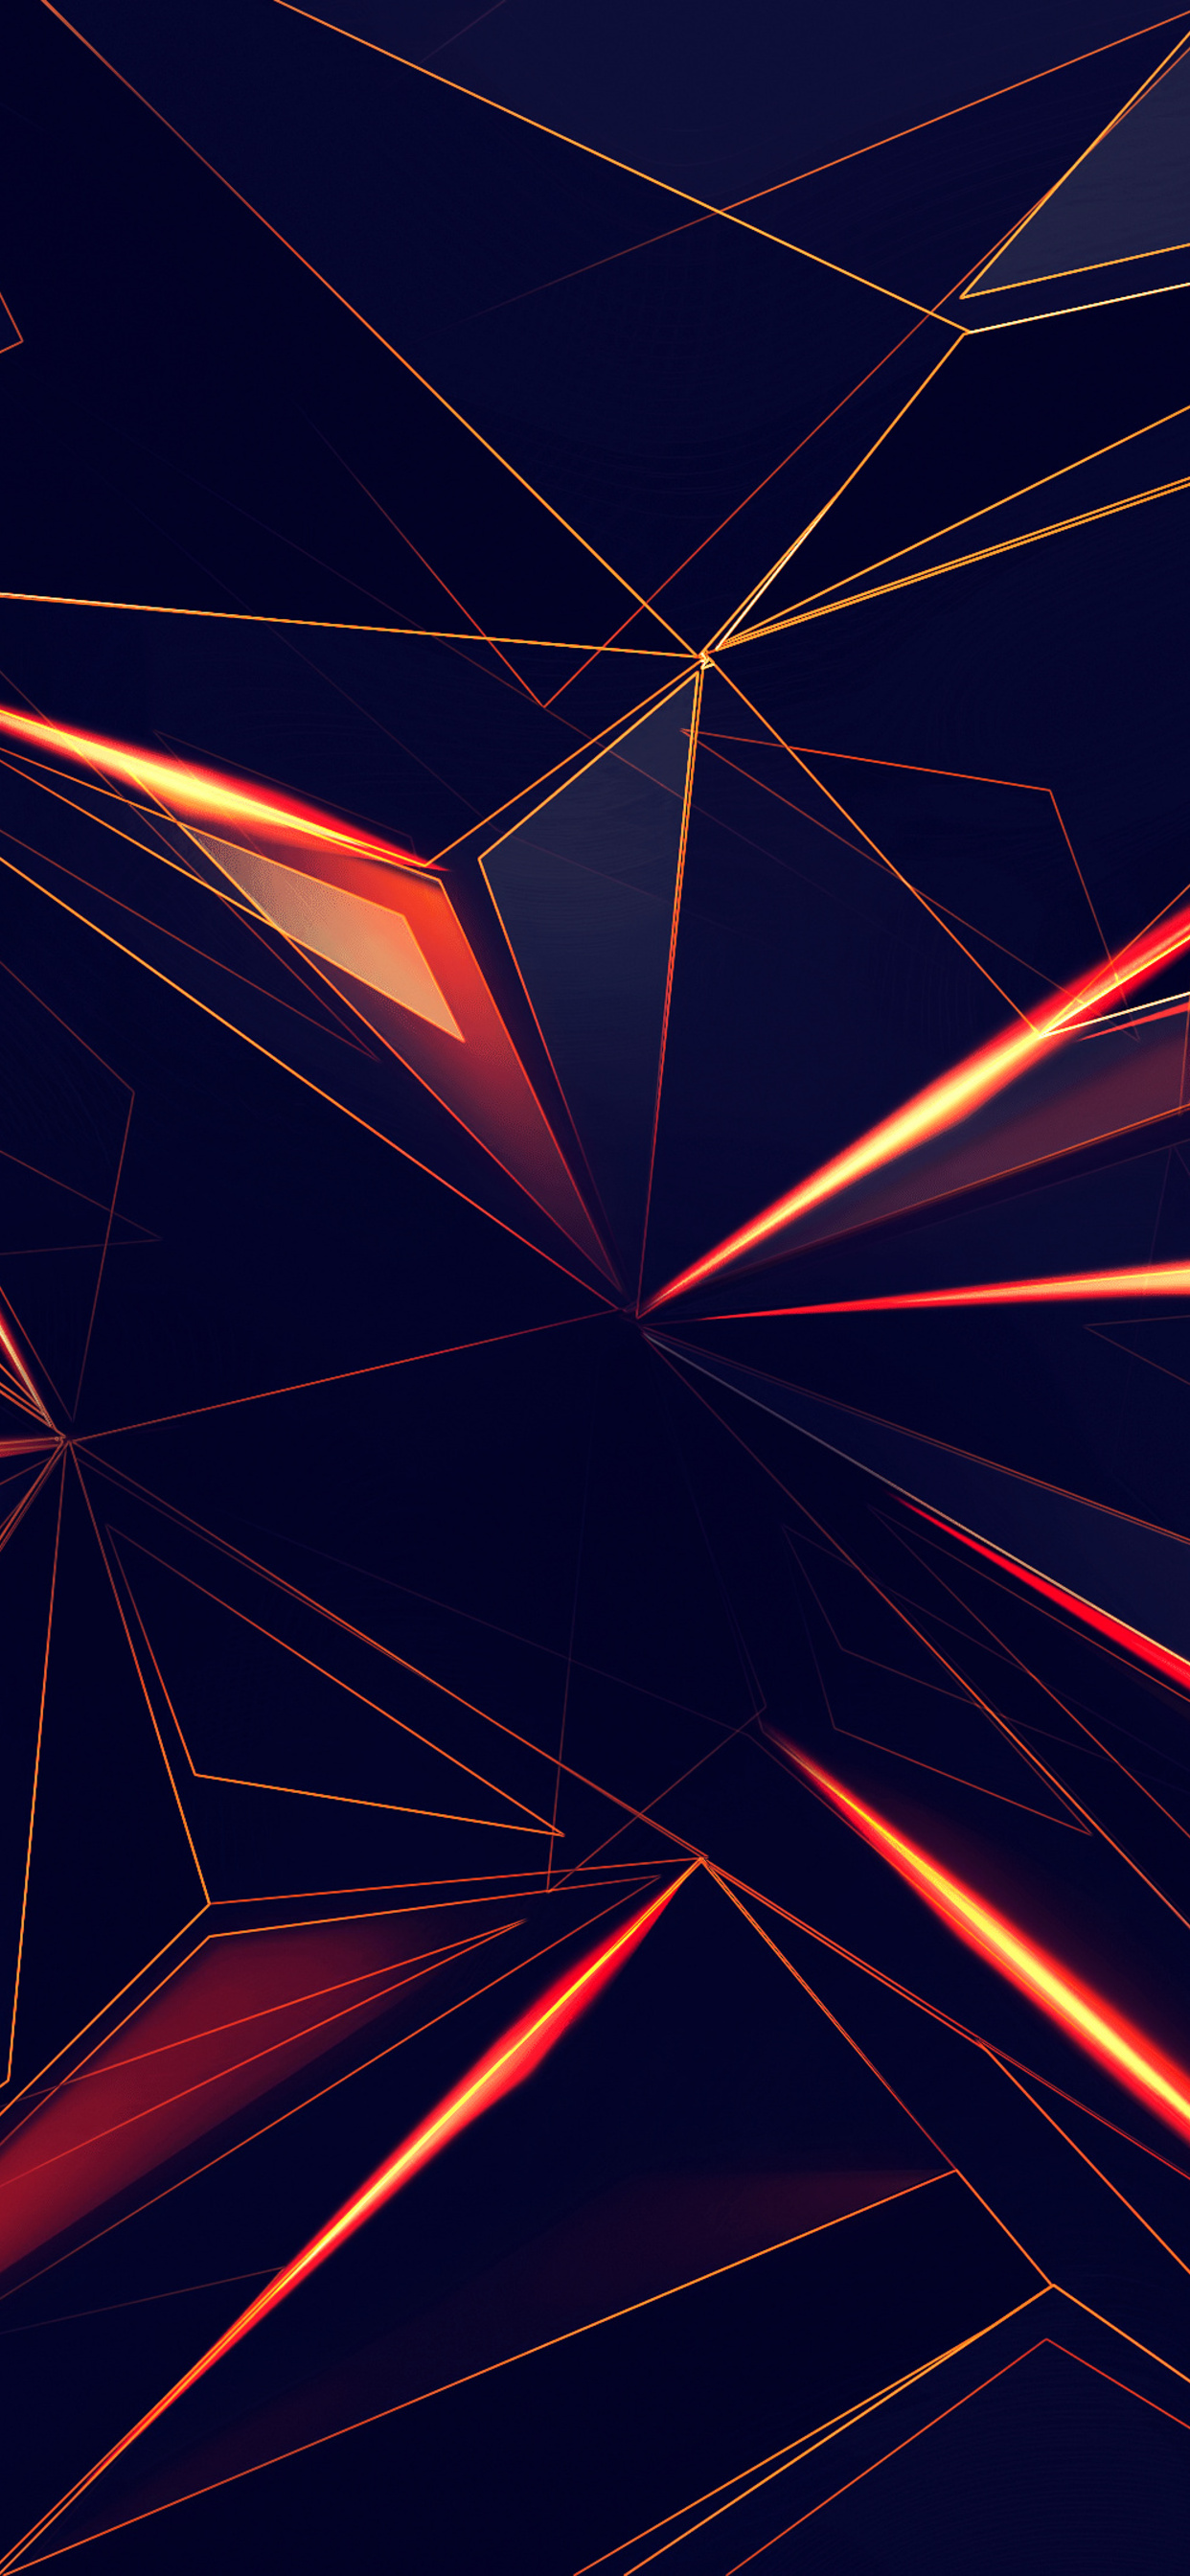 1242x2688 3d Shapes Abstract Lines 4k Iphone Xs Max Hd 4k